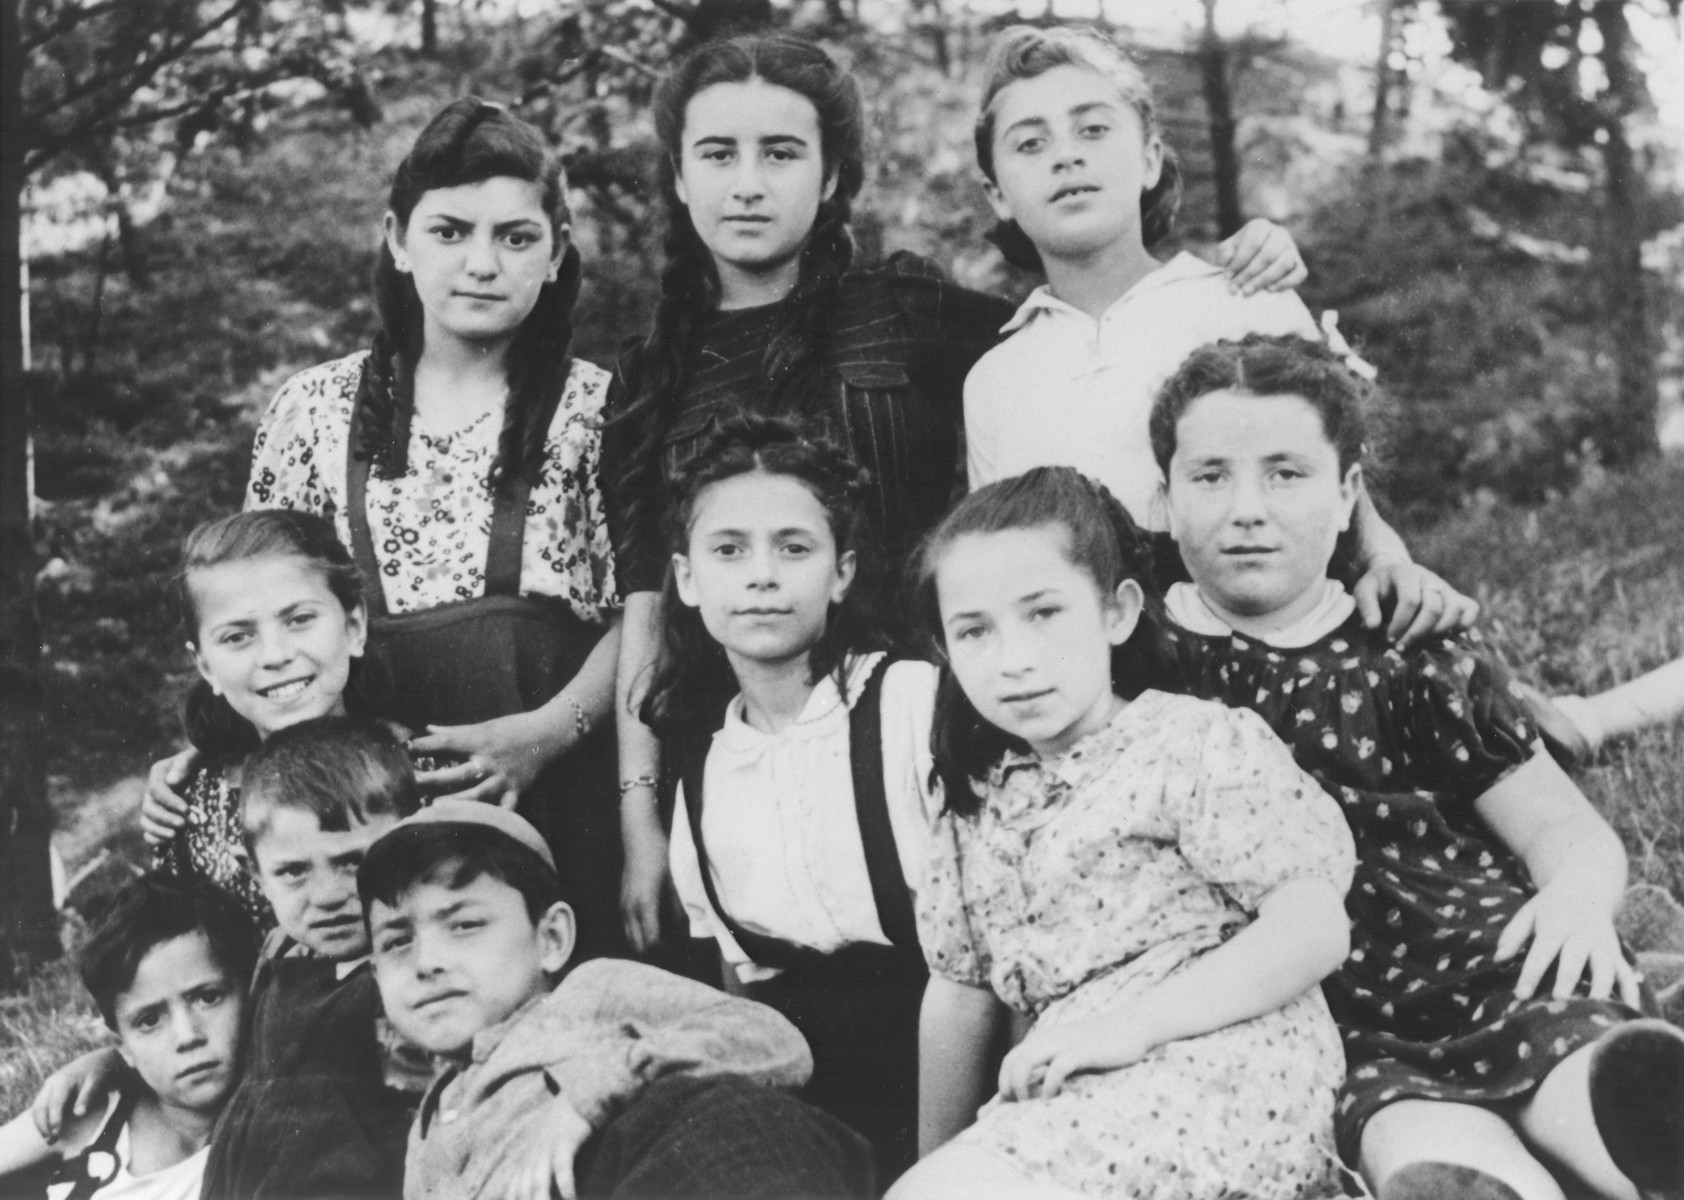 School children from the Tempelhof DP camp go for an outing.  Chuma Rendler is pictured on the far left, middle row.